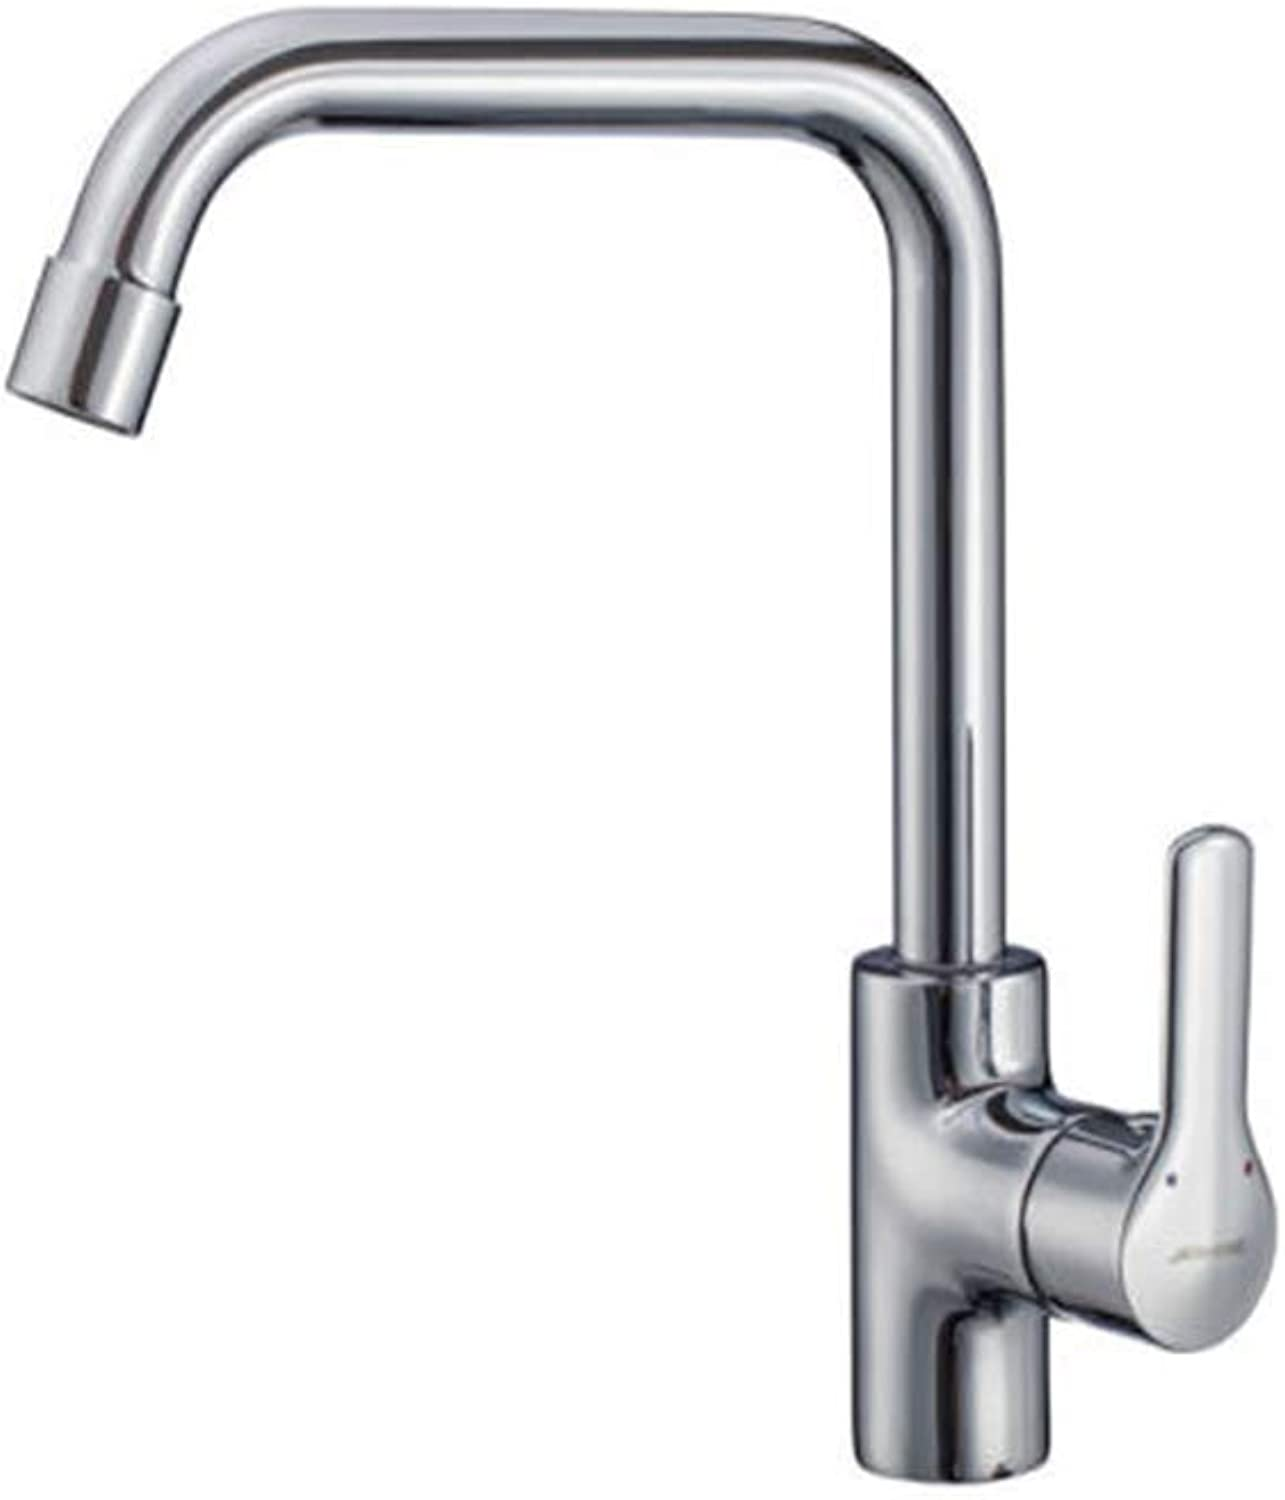 Kitchen Taps Faucet Modern Kitchen Sink Taps Stainless Steellead Kitchen Single redary Cold and Hot Water Tank Vegetable Washing Basin